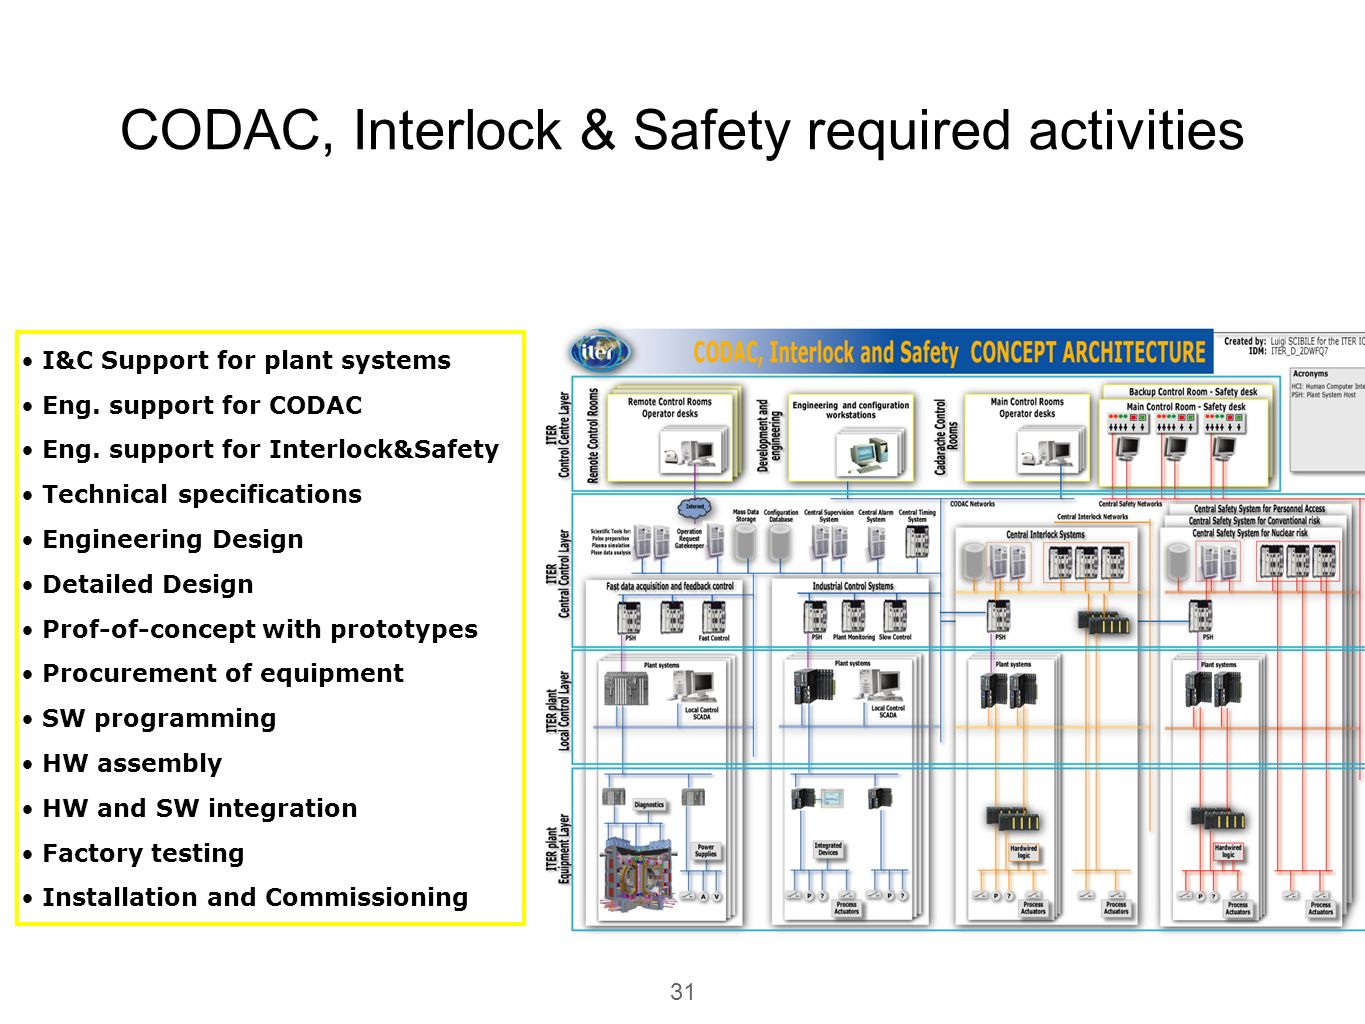 CODAC, Interlock & Safety required activities